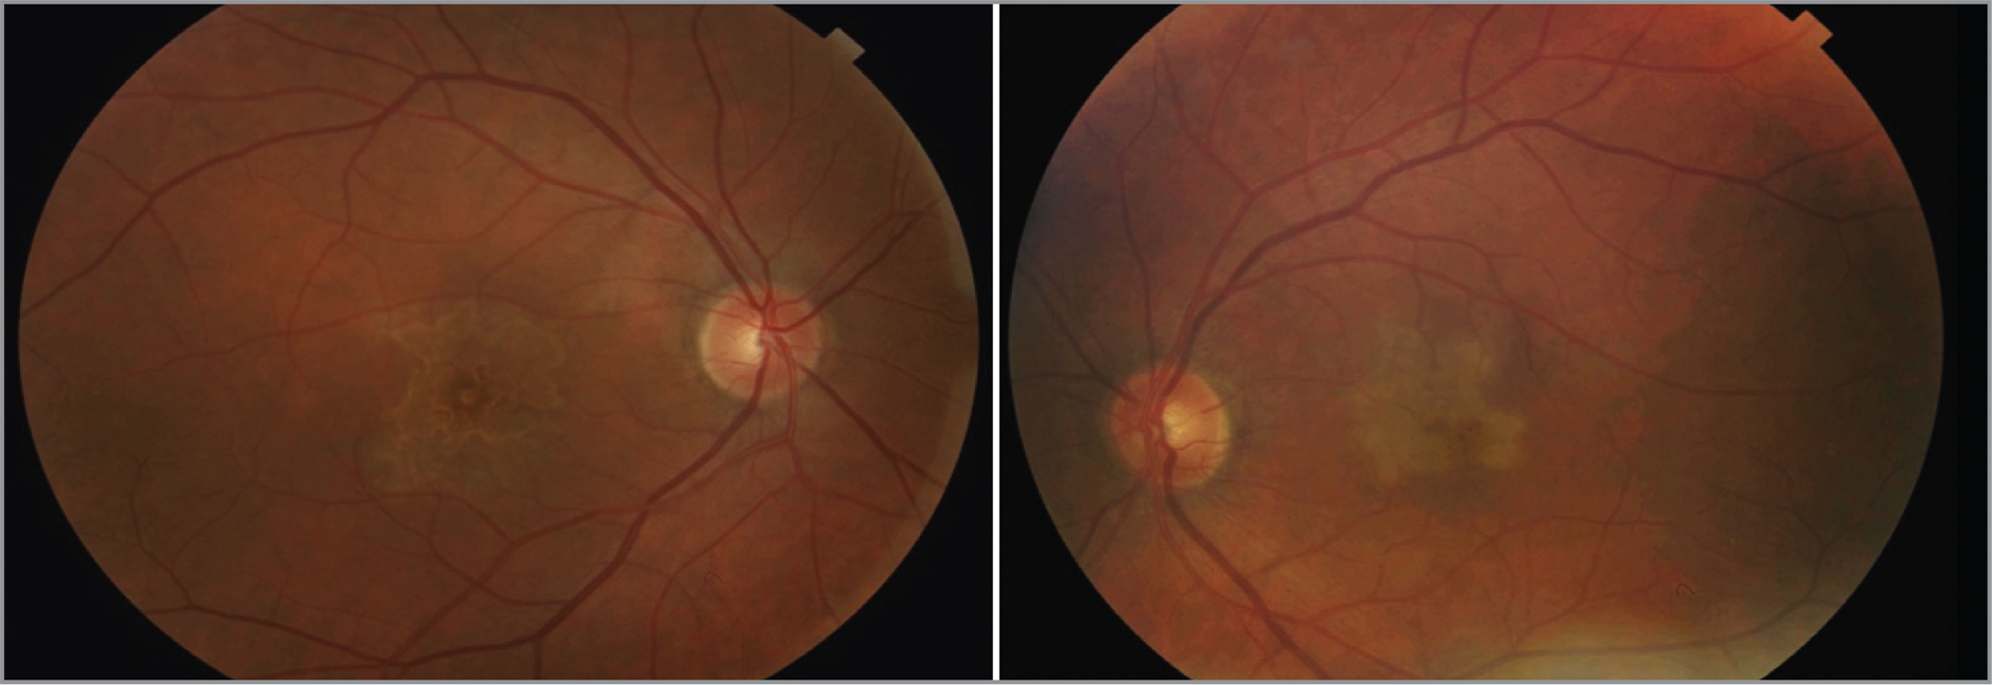 Color fundus photo showing bilateral placoid maculopathy at presentation.